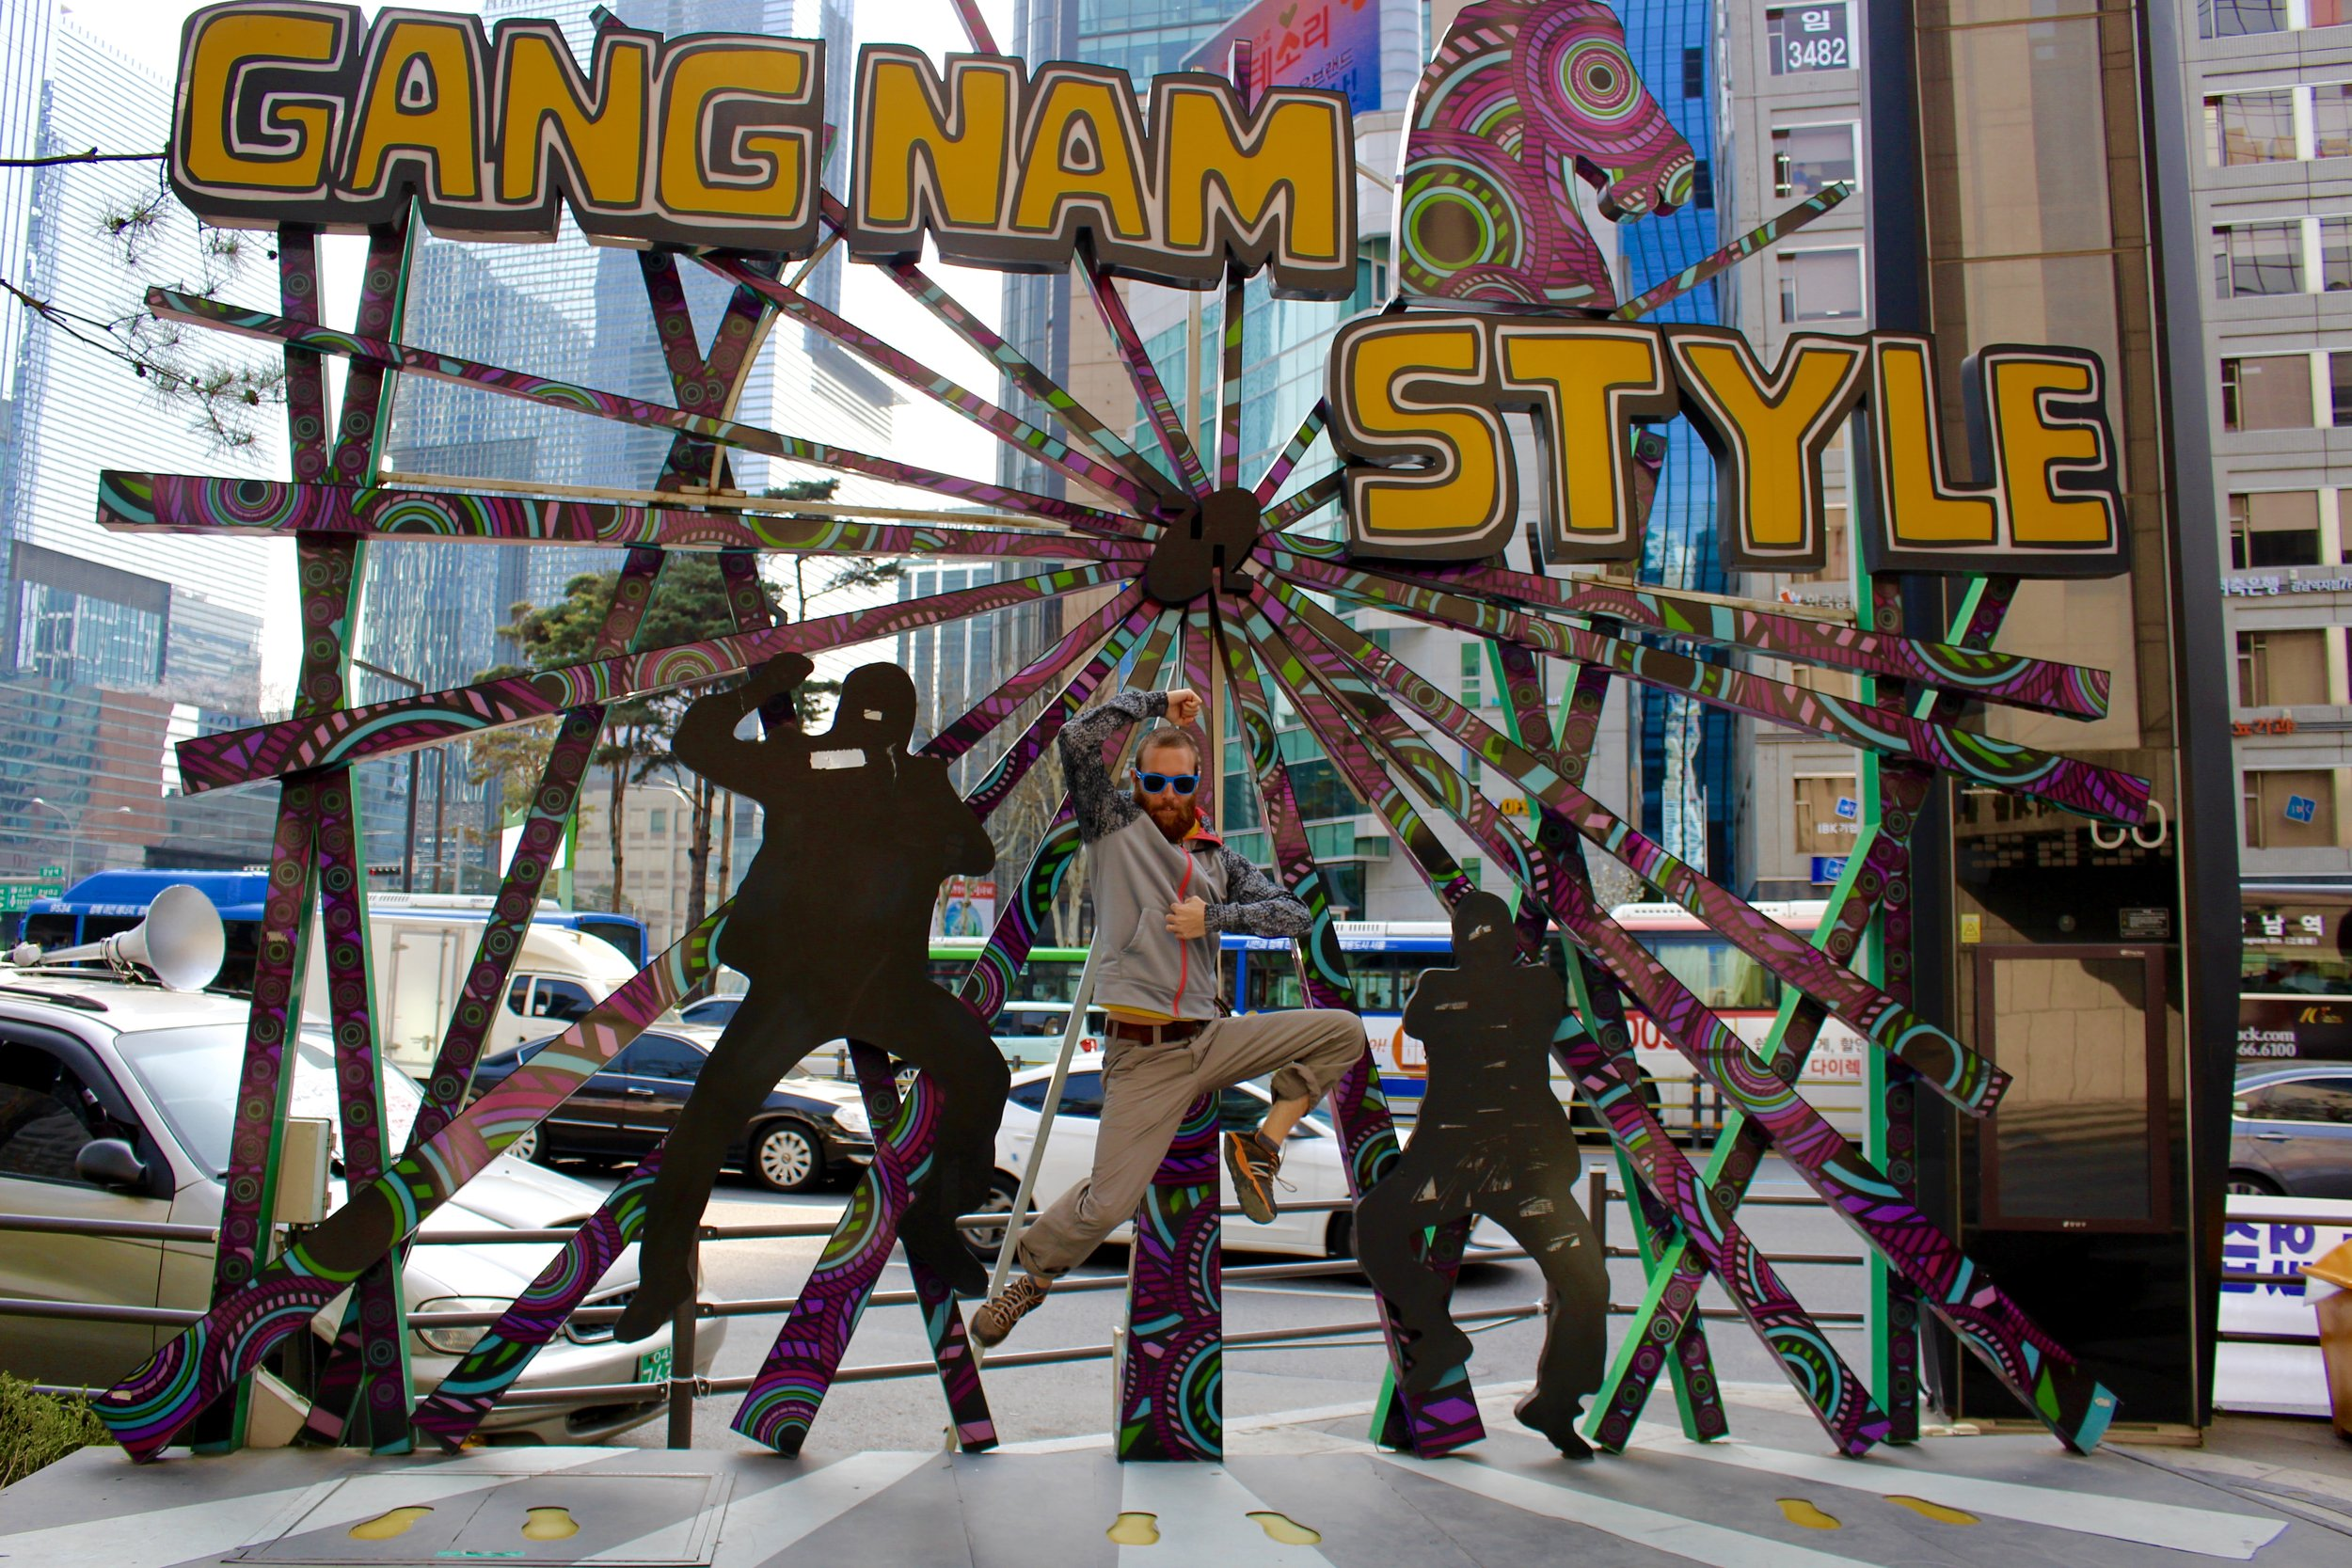 Danny having fun in Gangnam-gu, Seoul, South Korea